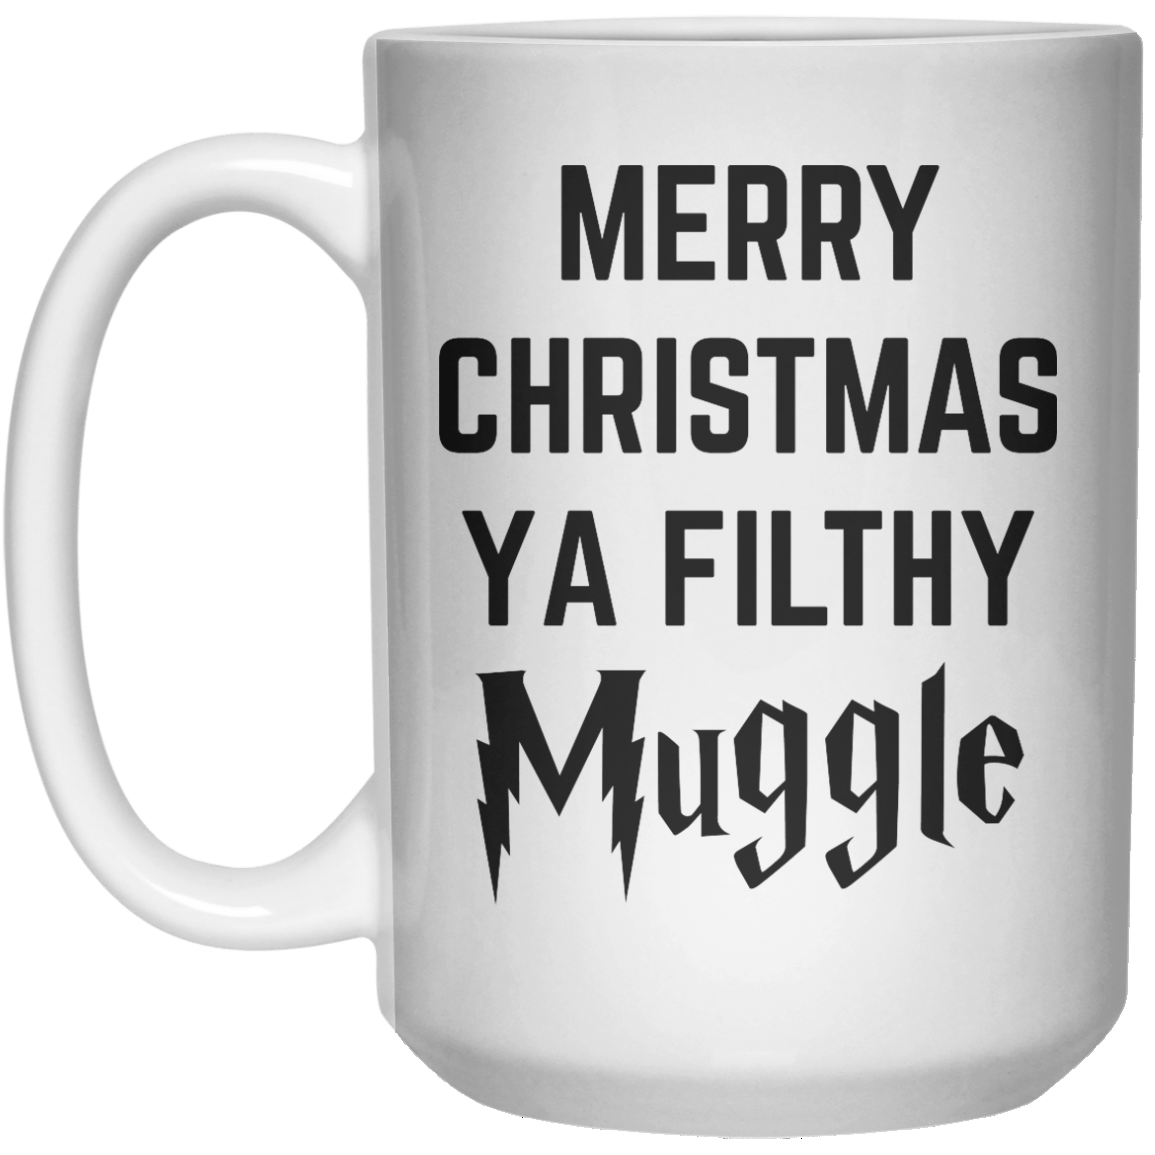 Merry Christmas Ya Filthy Muggle MUG  Mug - 15oz - Shirtoopia